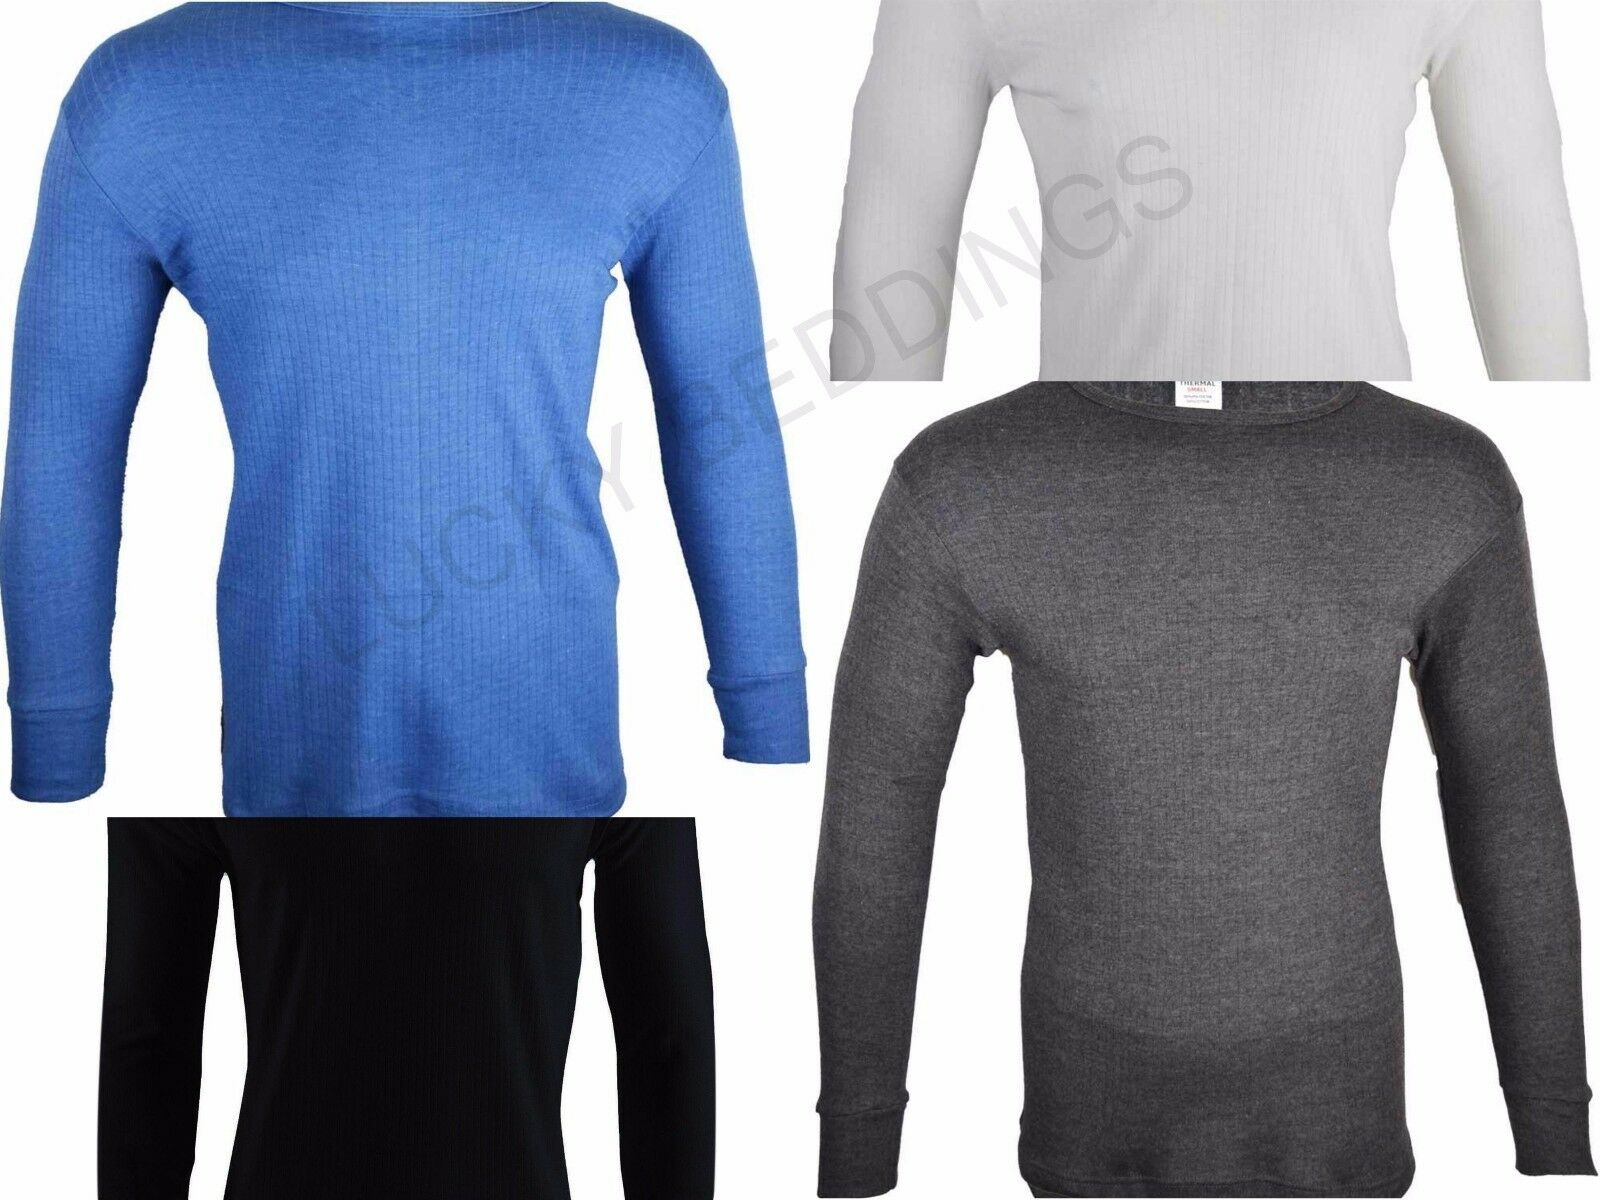 MENS HEAT CONTROL SUPER THERMAL LONG SLEEVED  T-SHIRT 0.45 TOG RATING EXTRA HOT